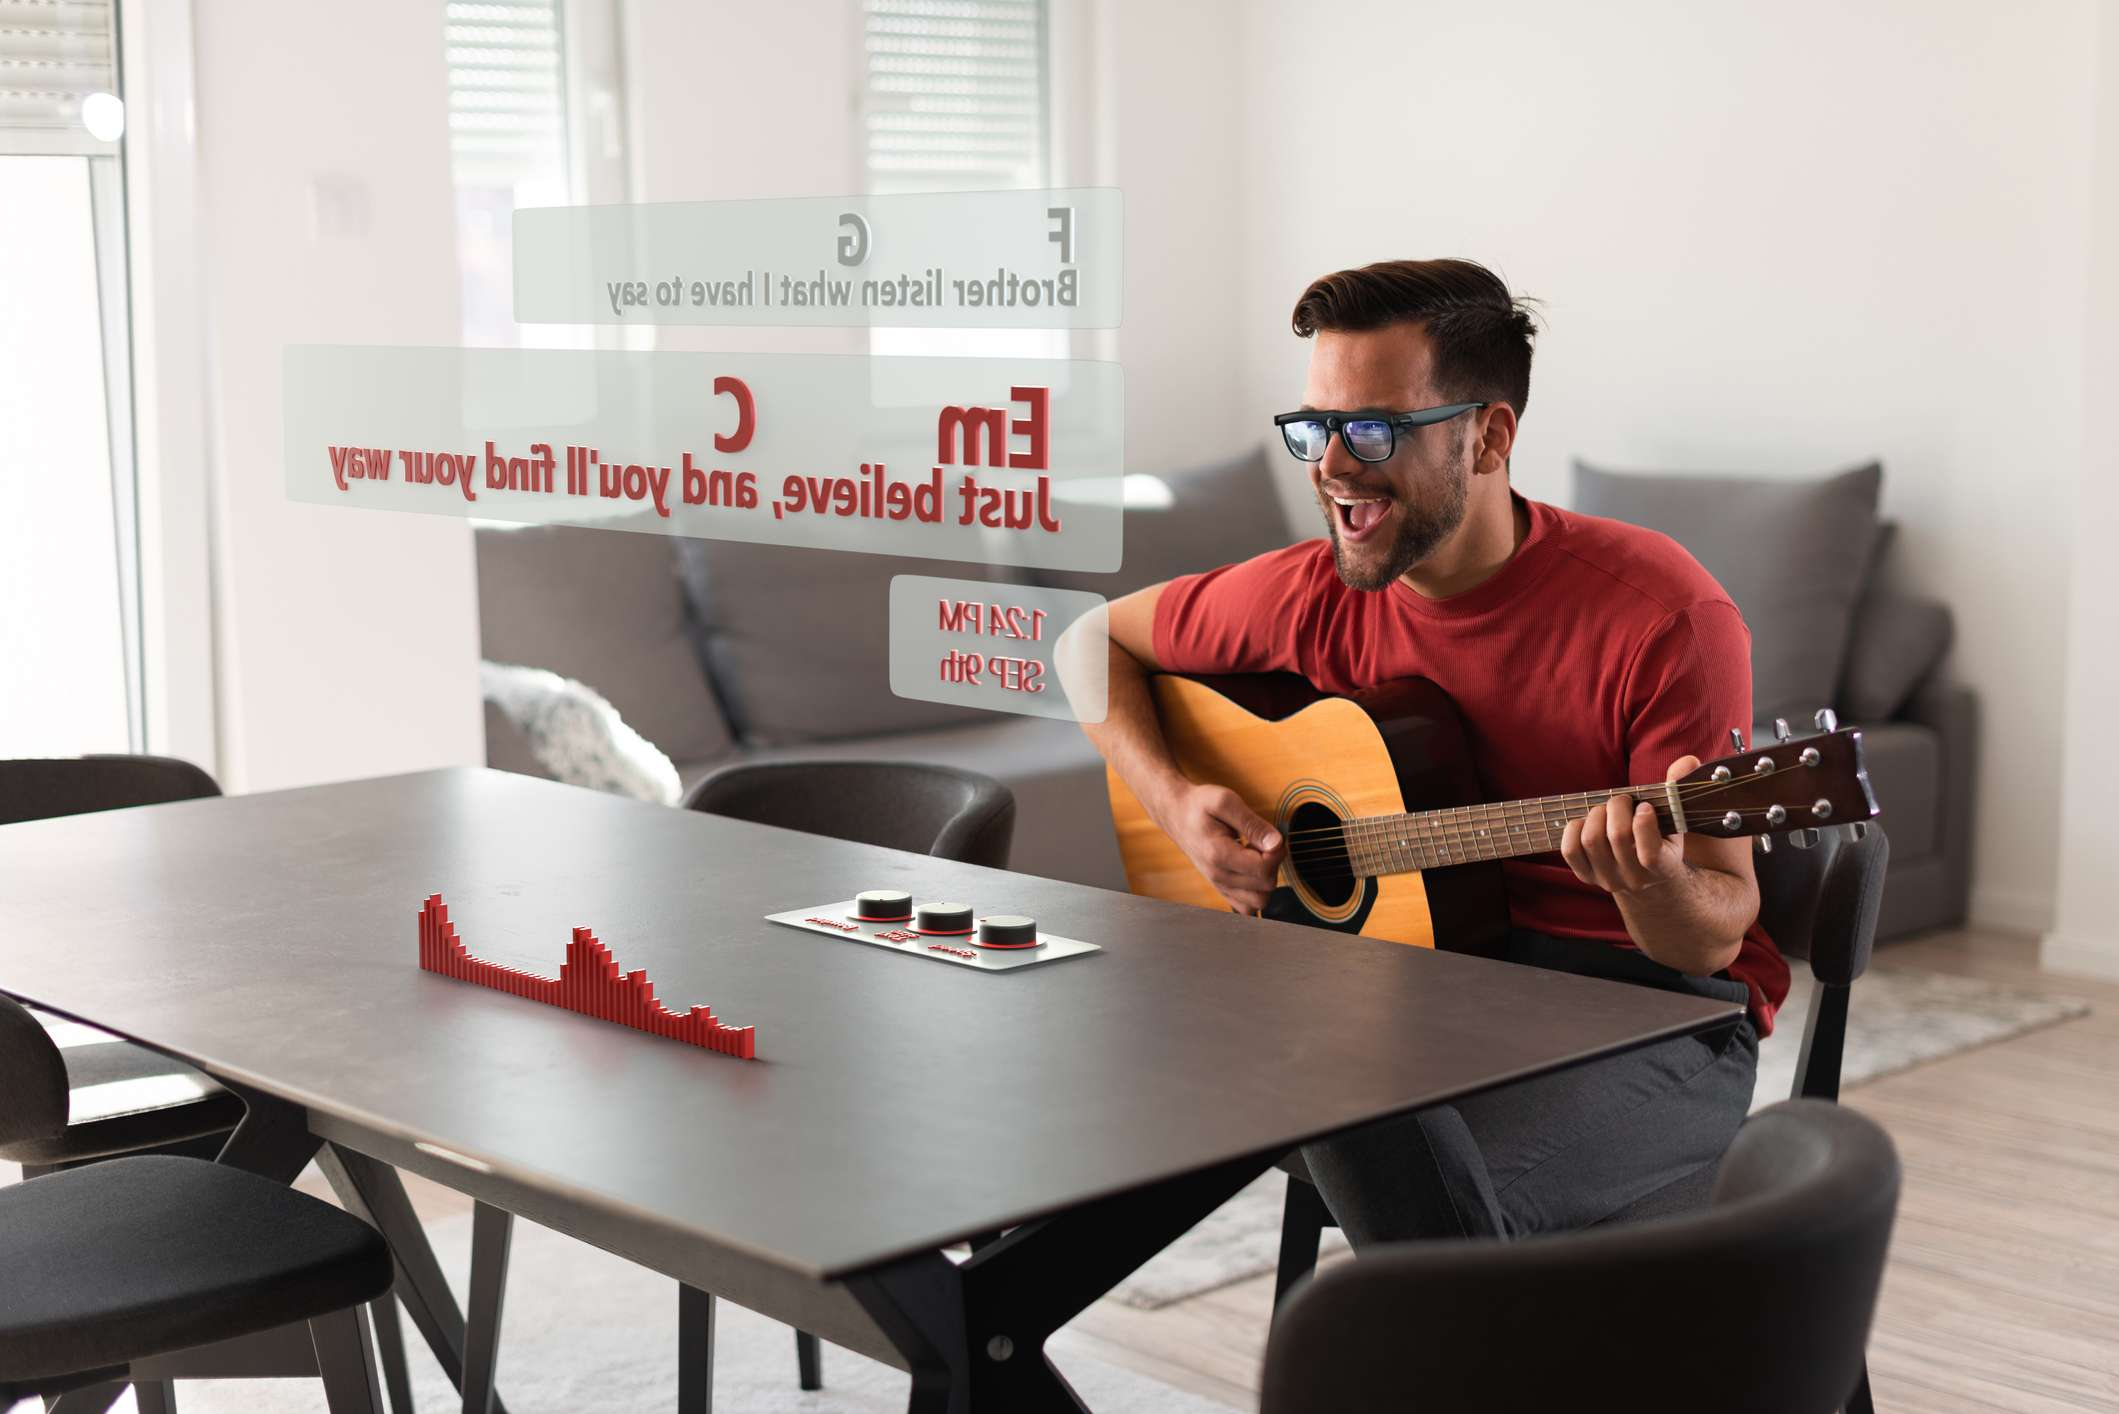 Man is using Augmented Reality glasses to see the lyrics and chord of the song he is playing on the guitar.